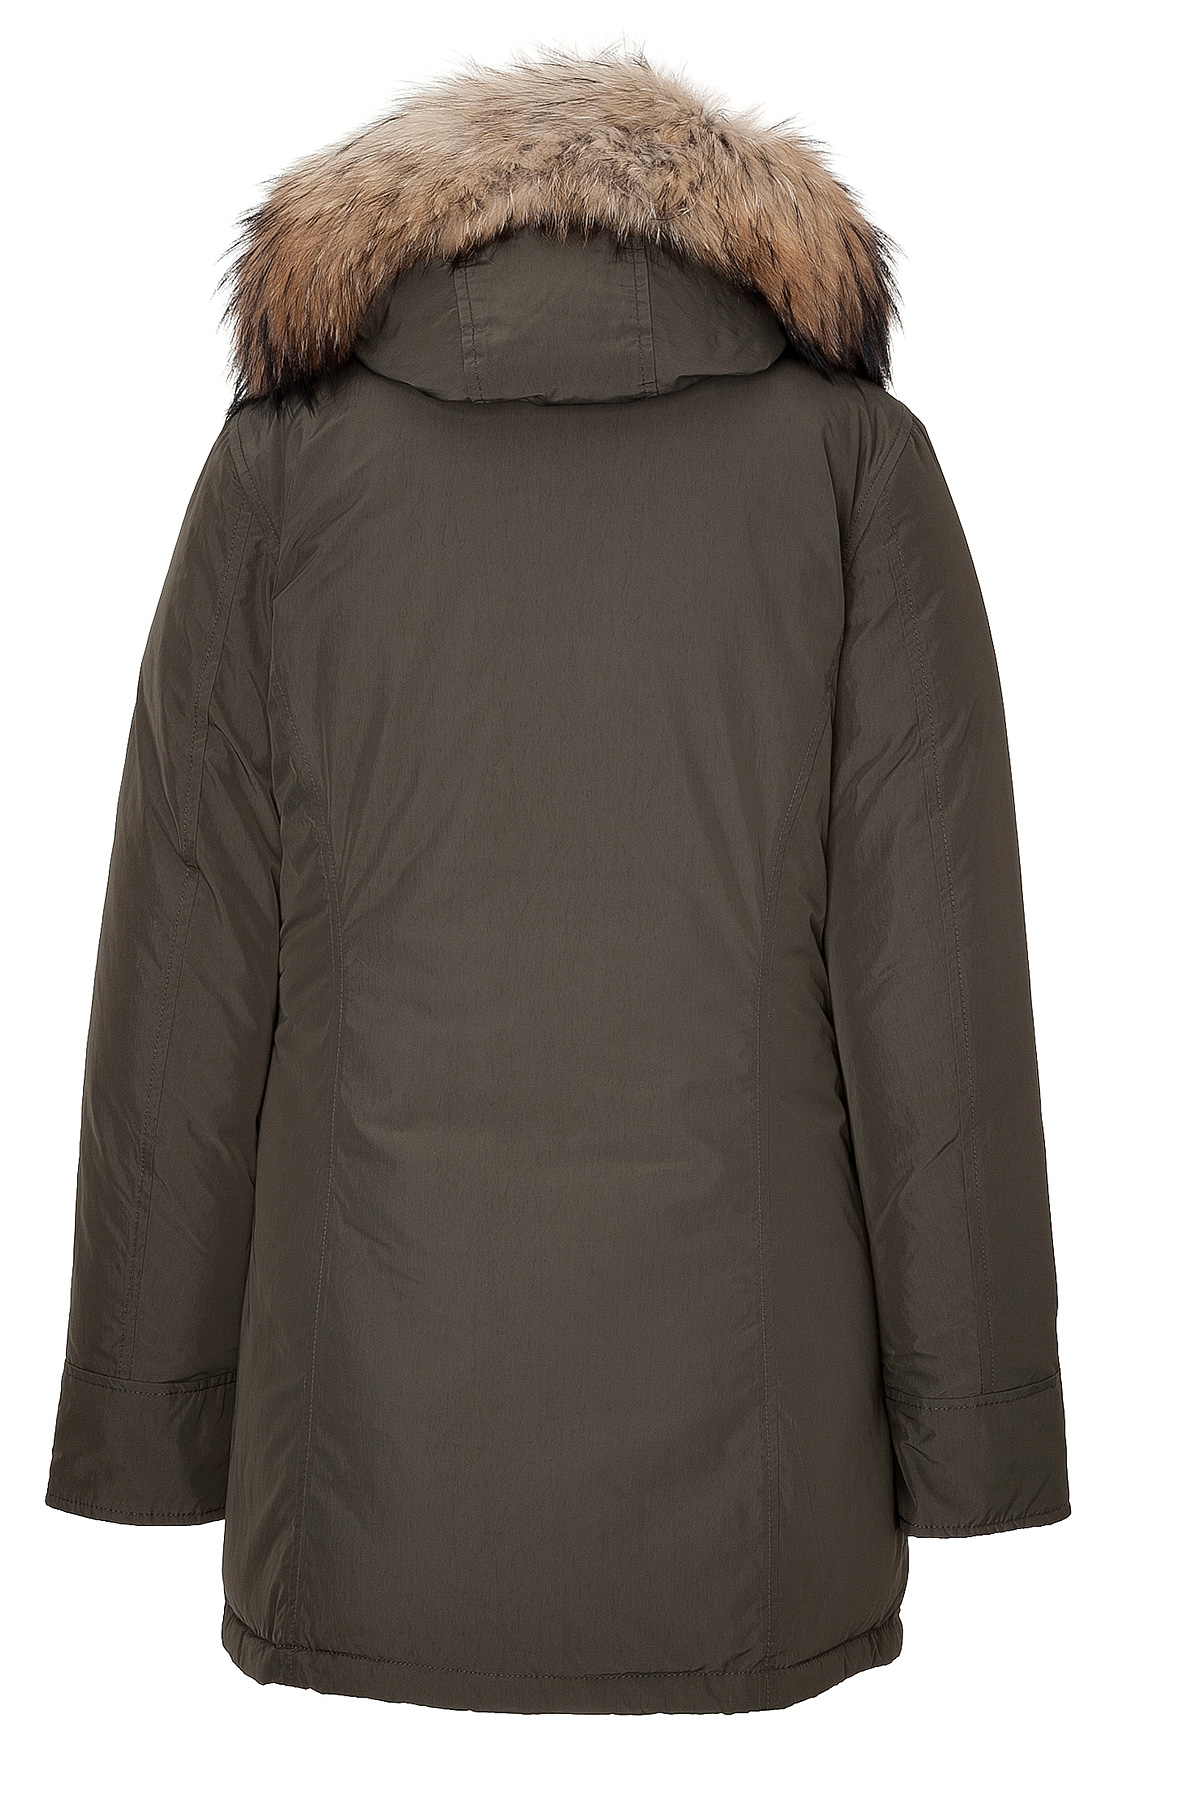 woolrich womens luxury arctic parka with fur trim in green lyst. Black Bedroom Furniture Sets. Home Design Ideas